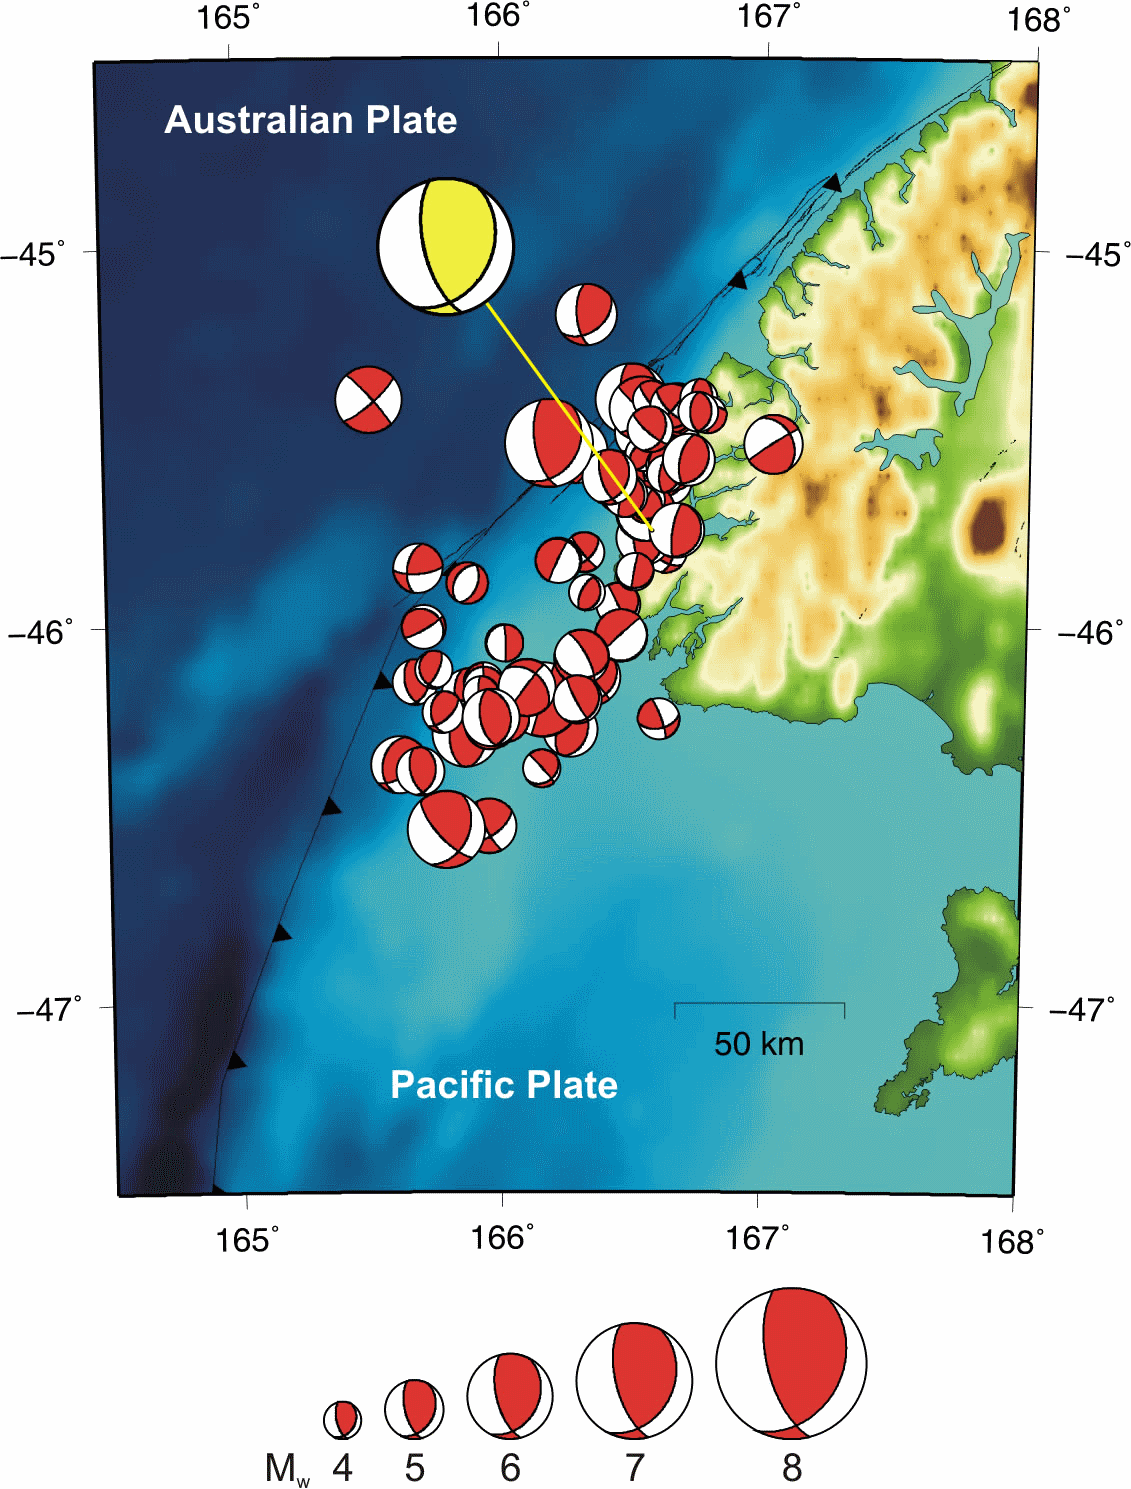 Focal mechanisms for the earthquakes in Fiordland (the mainshock is shown in yellow and offset from its true location).